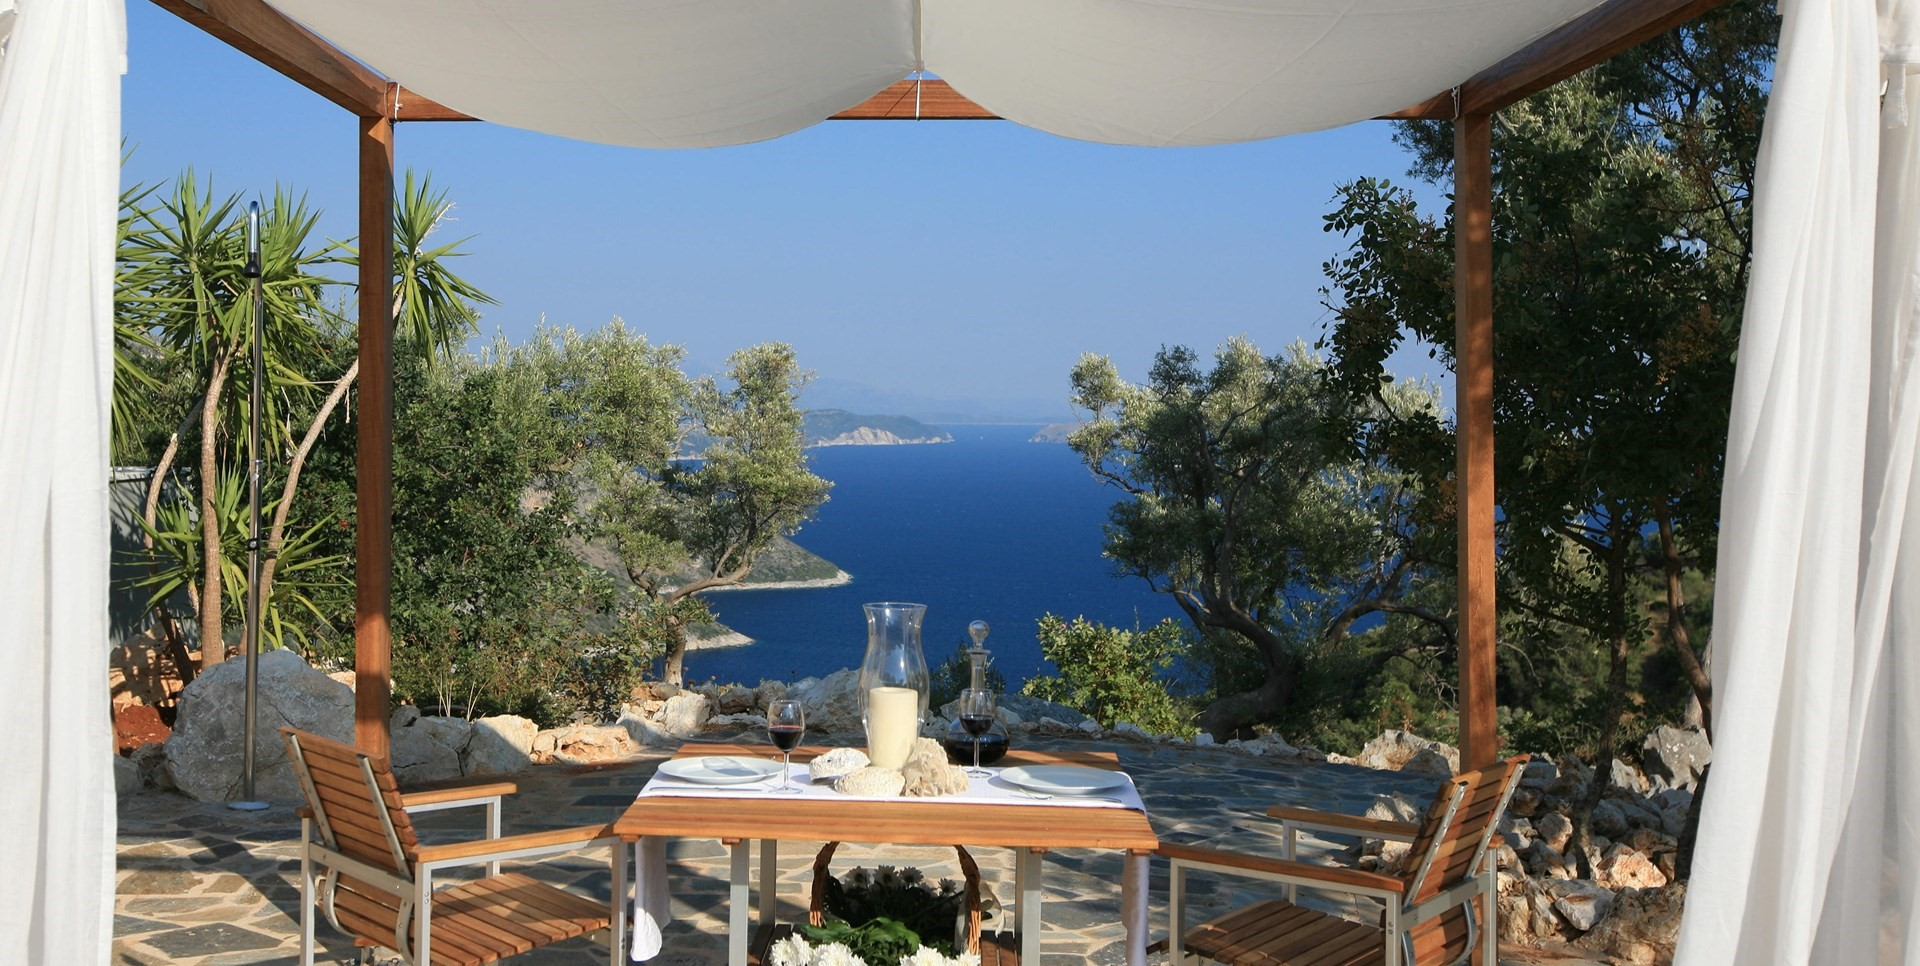 lefkada-cottage-al-fresco-dining